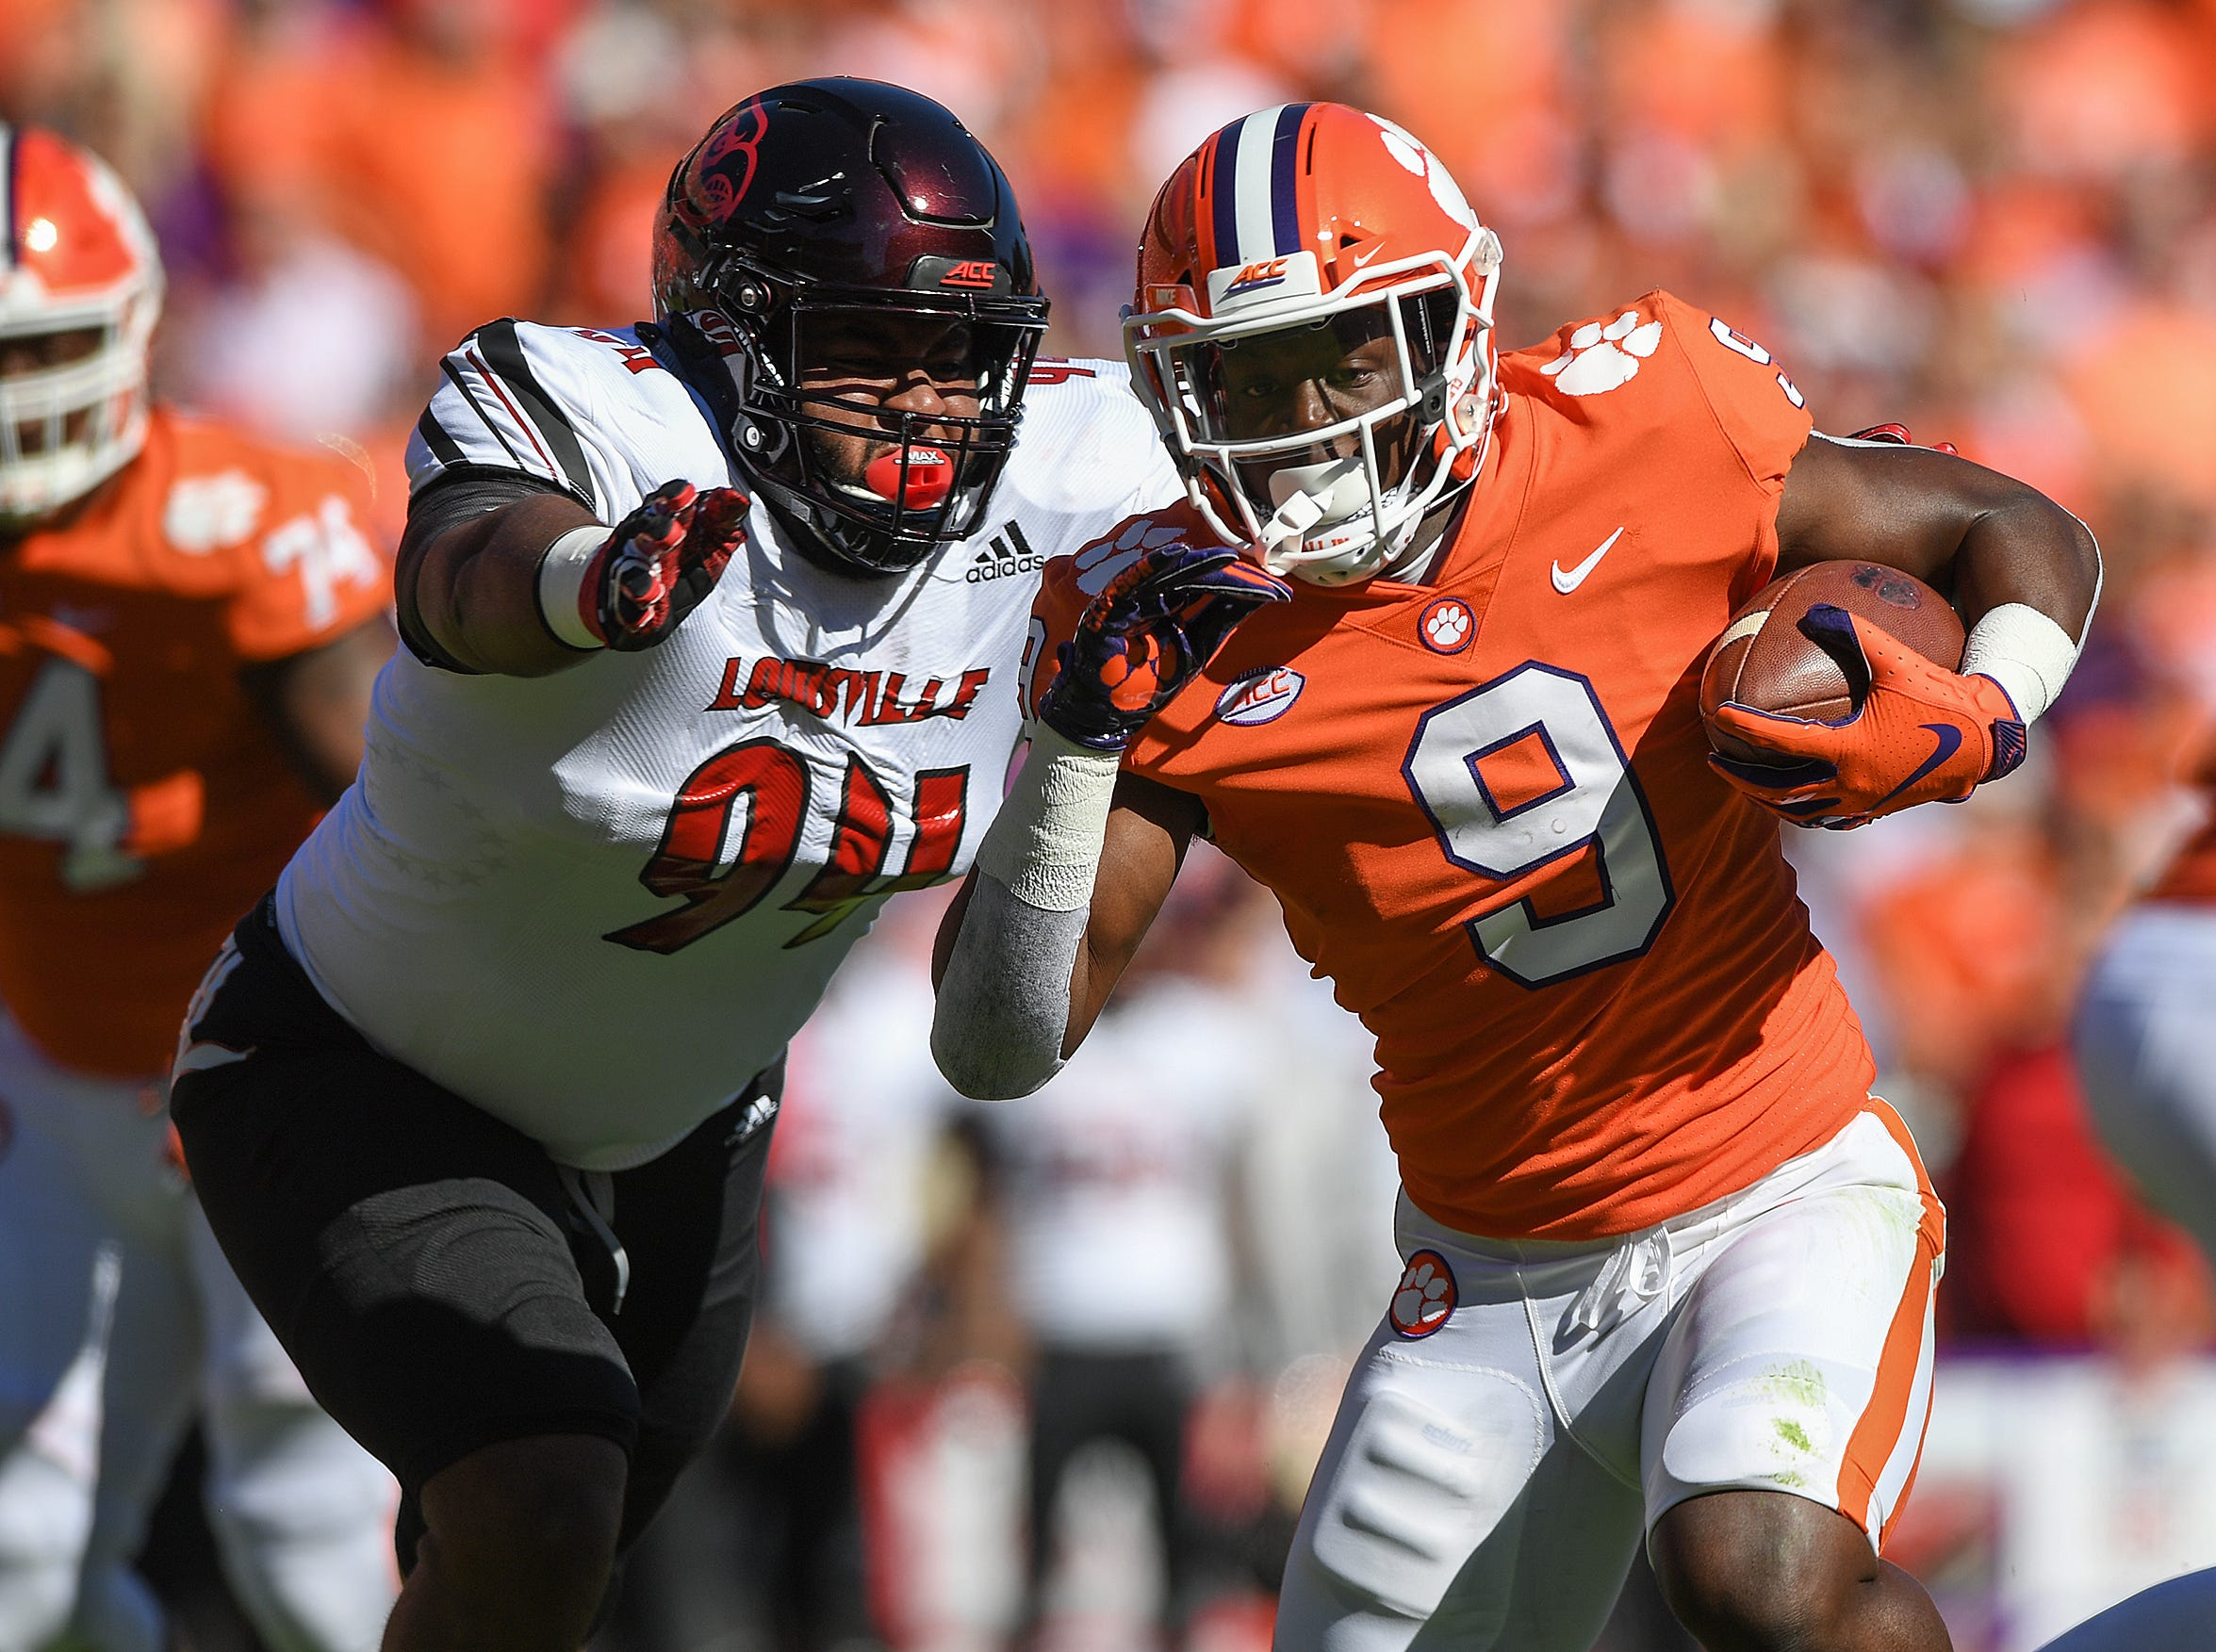 Clemson running back Travis Etienne (9) scores against Louisville during the 1st quarter Saturday, November 3, 2018 at Clemson's Memorial Stadium.